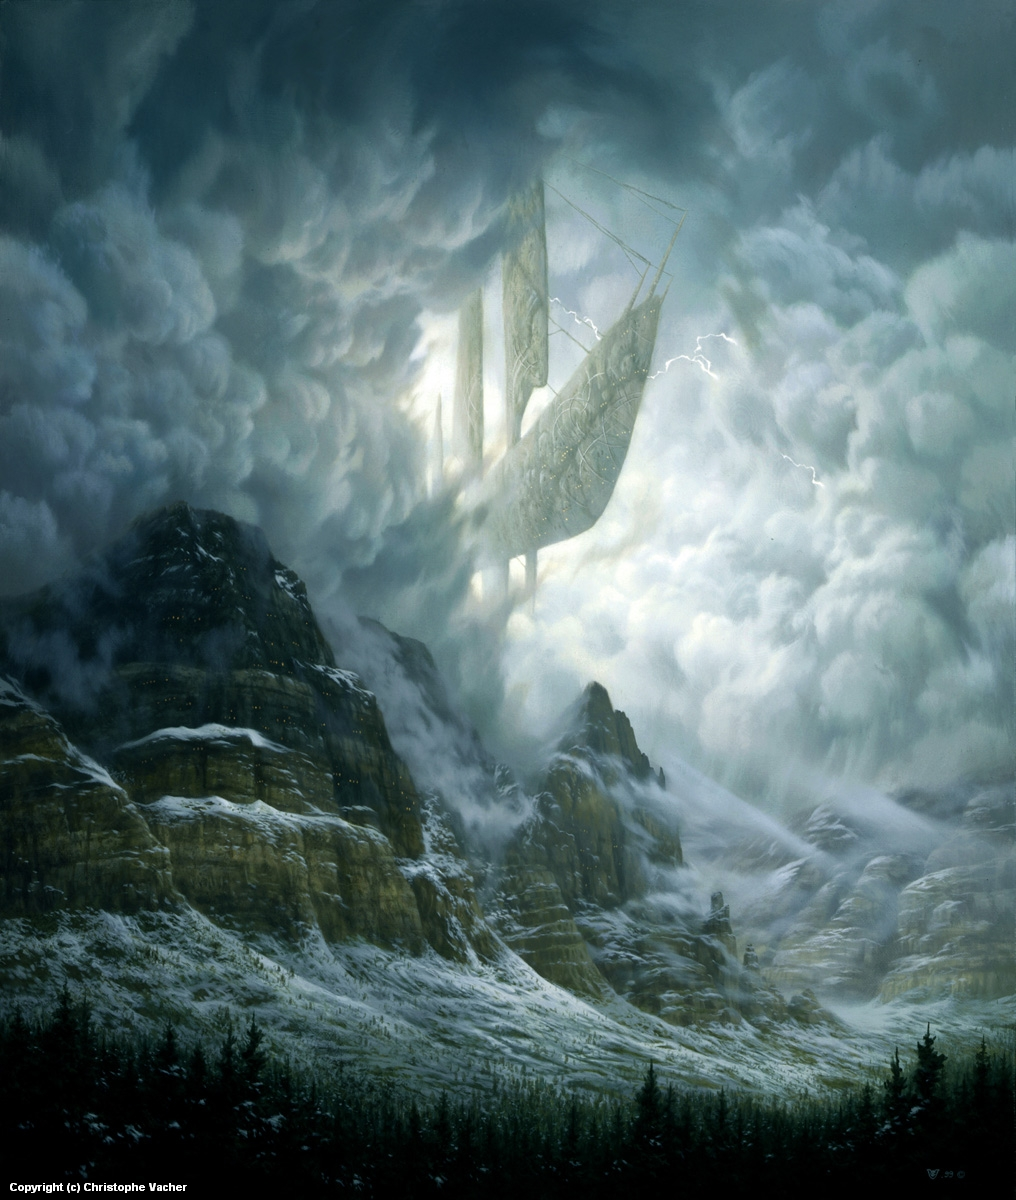 Stormbreakers Artwork by Christophe Vacher